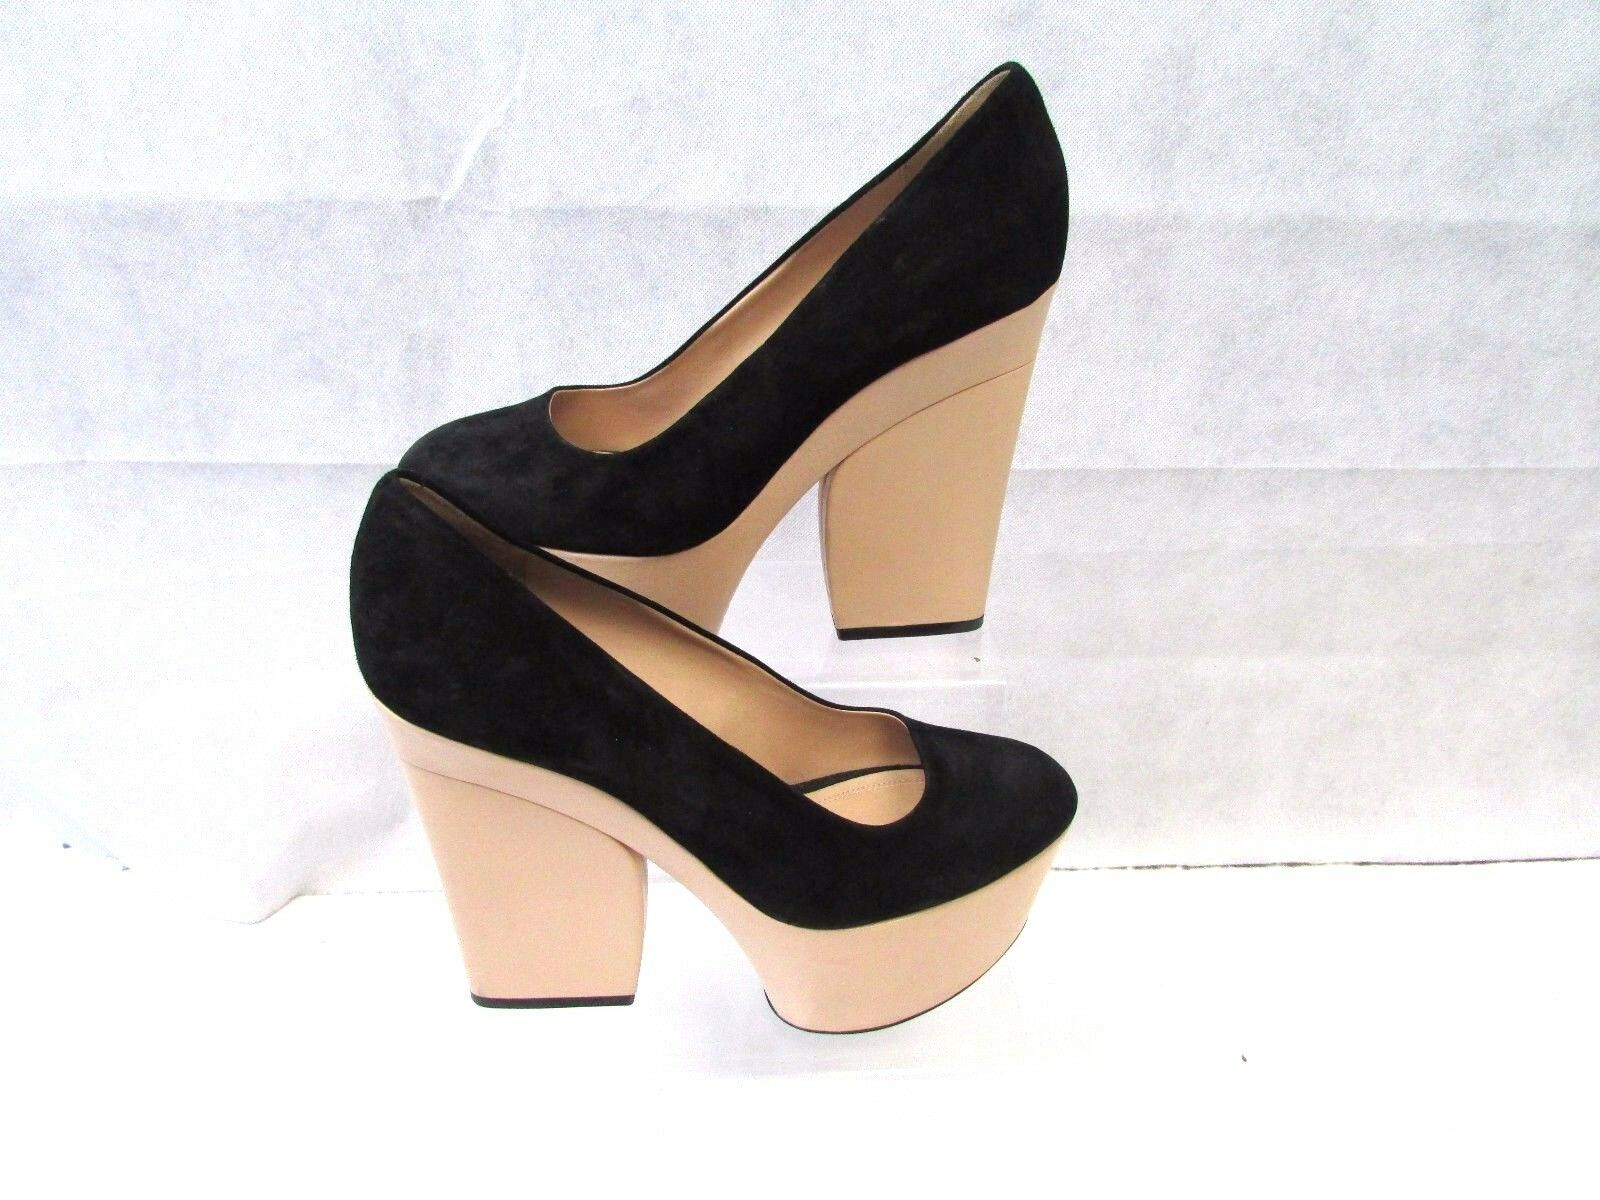 CELINE PLATFORM BLOCK HEELS UK BLACK SUEDE SHOES 38.5 UK HEELS 5.5 AUTHENTIC bd4c05